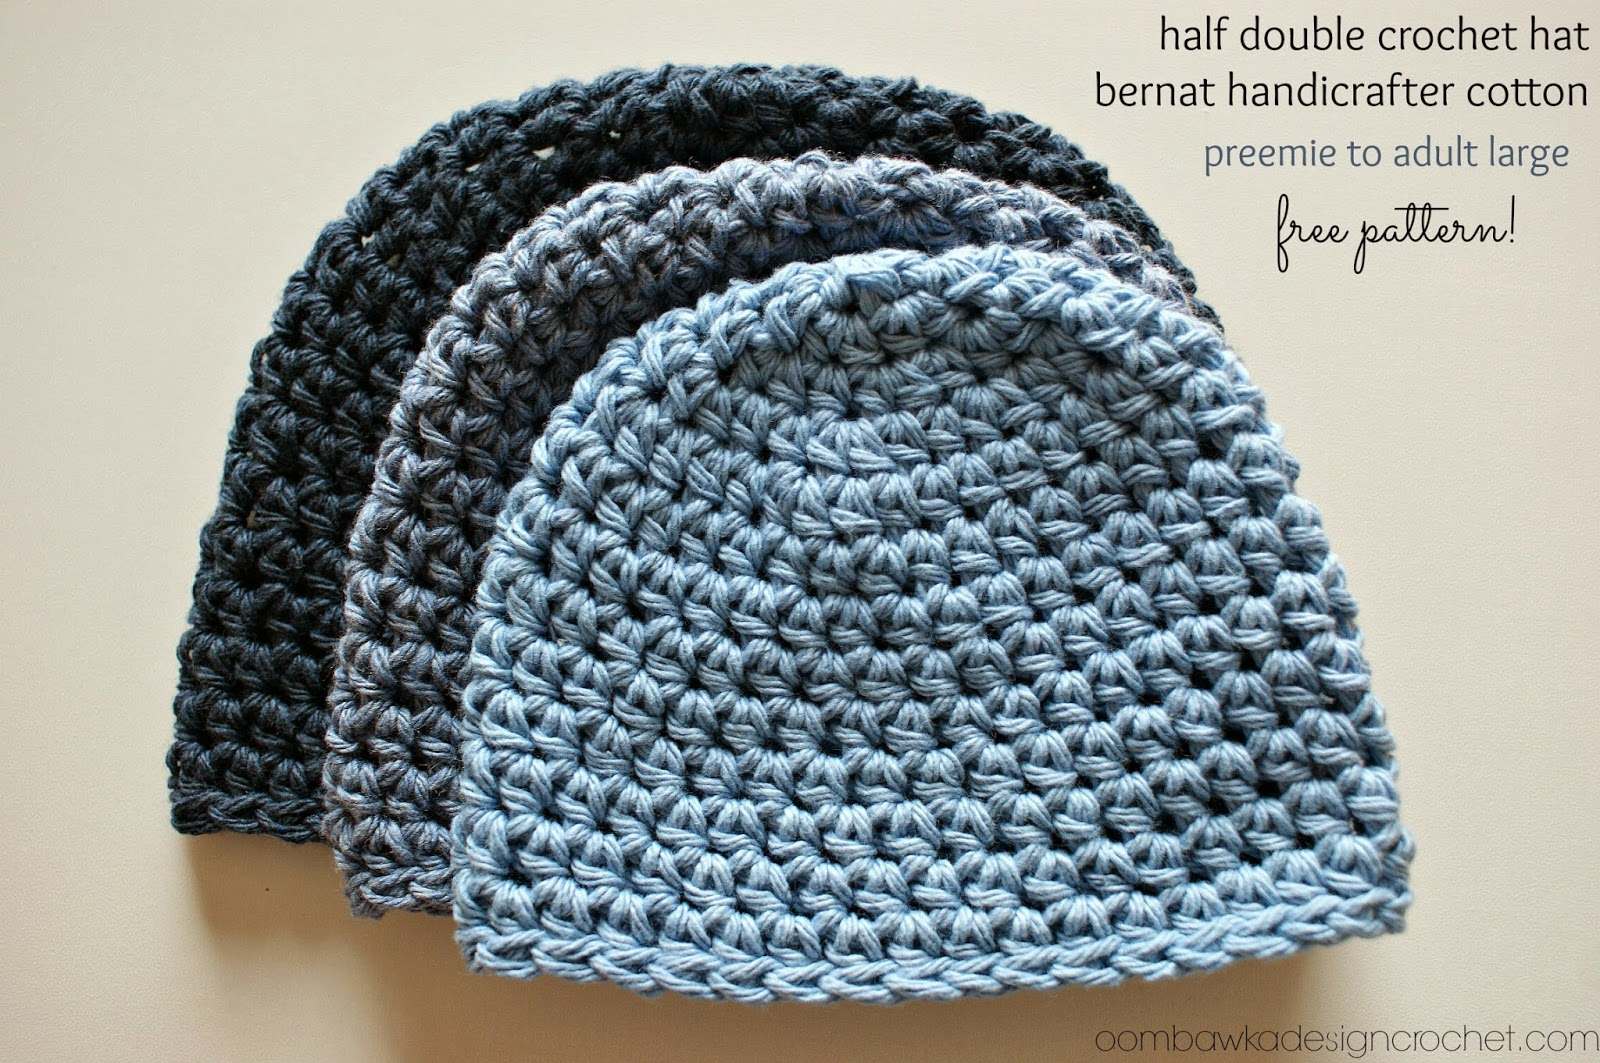 Crochet Patterns Using Cotton Yarn : Crochet Hat Pattern #2 Free Crochet Pattern ? Oombawka Design ...